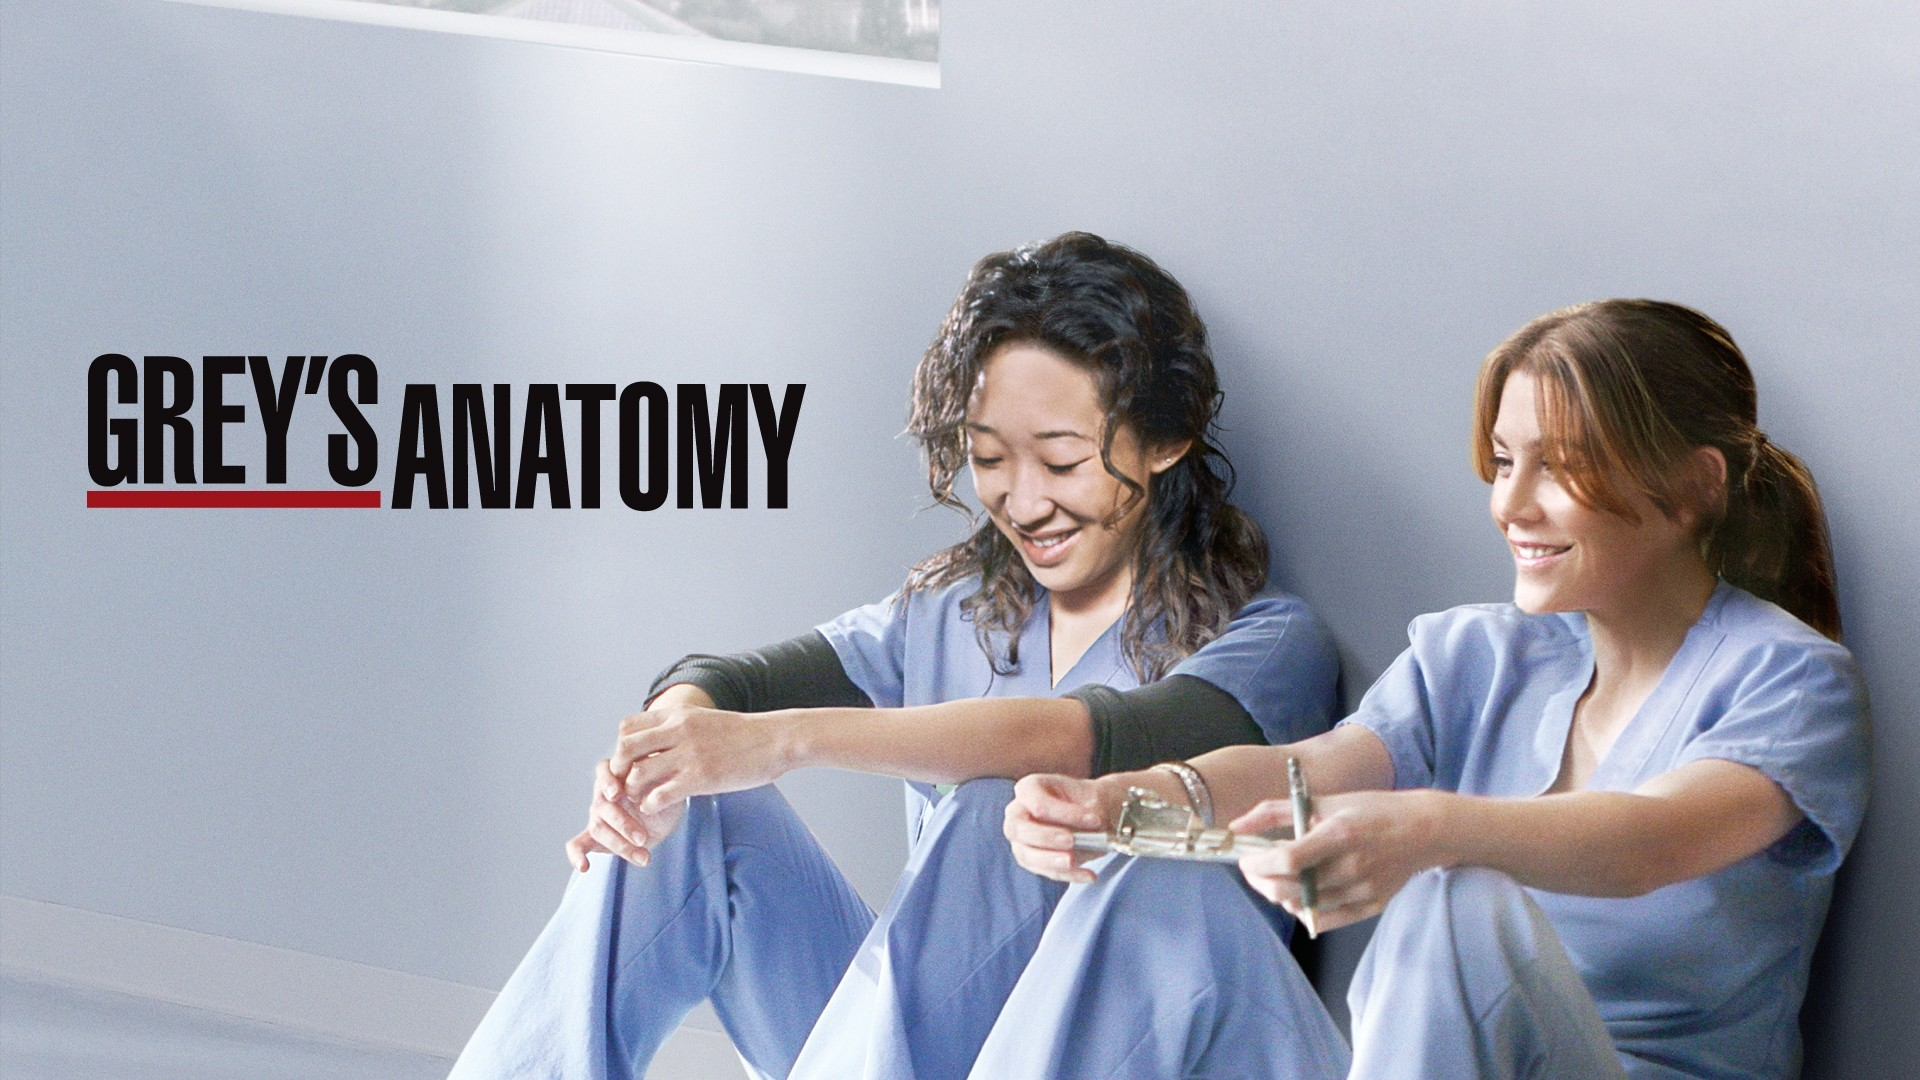 Grey's Anatomy Wallpaper theme